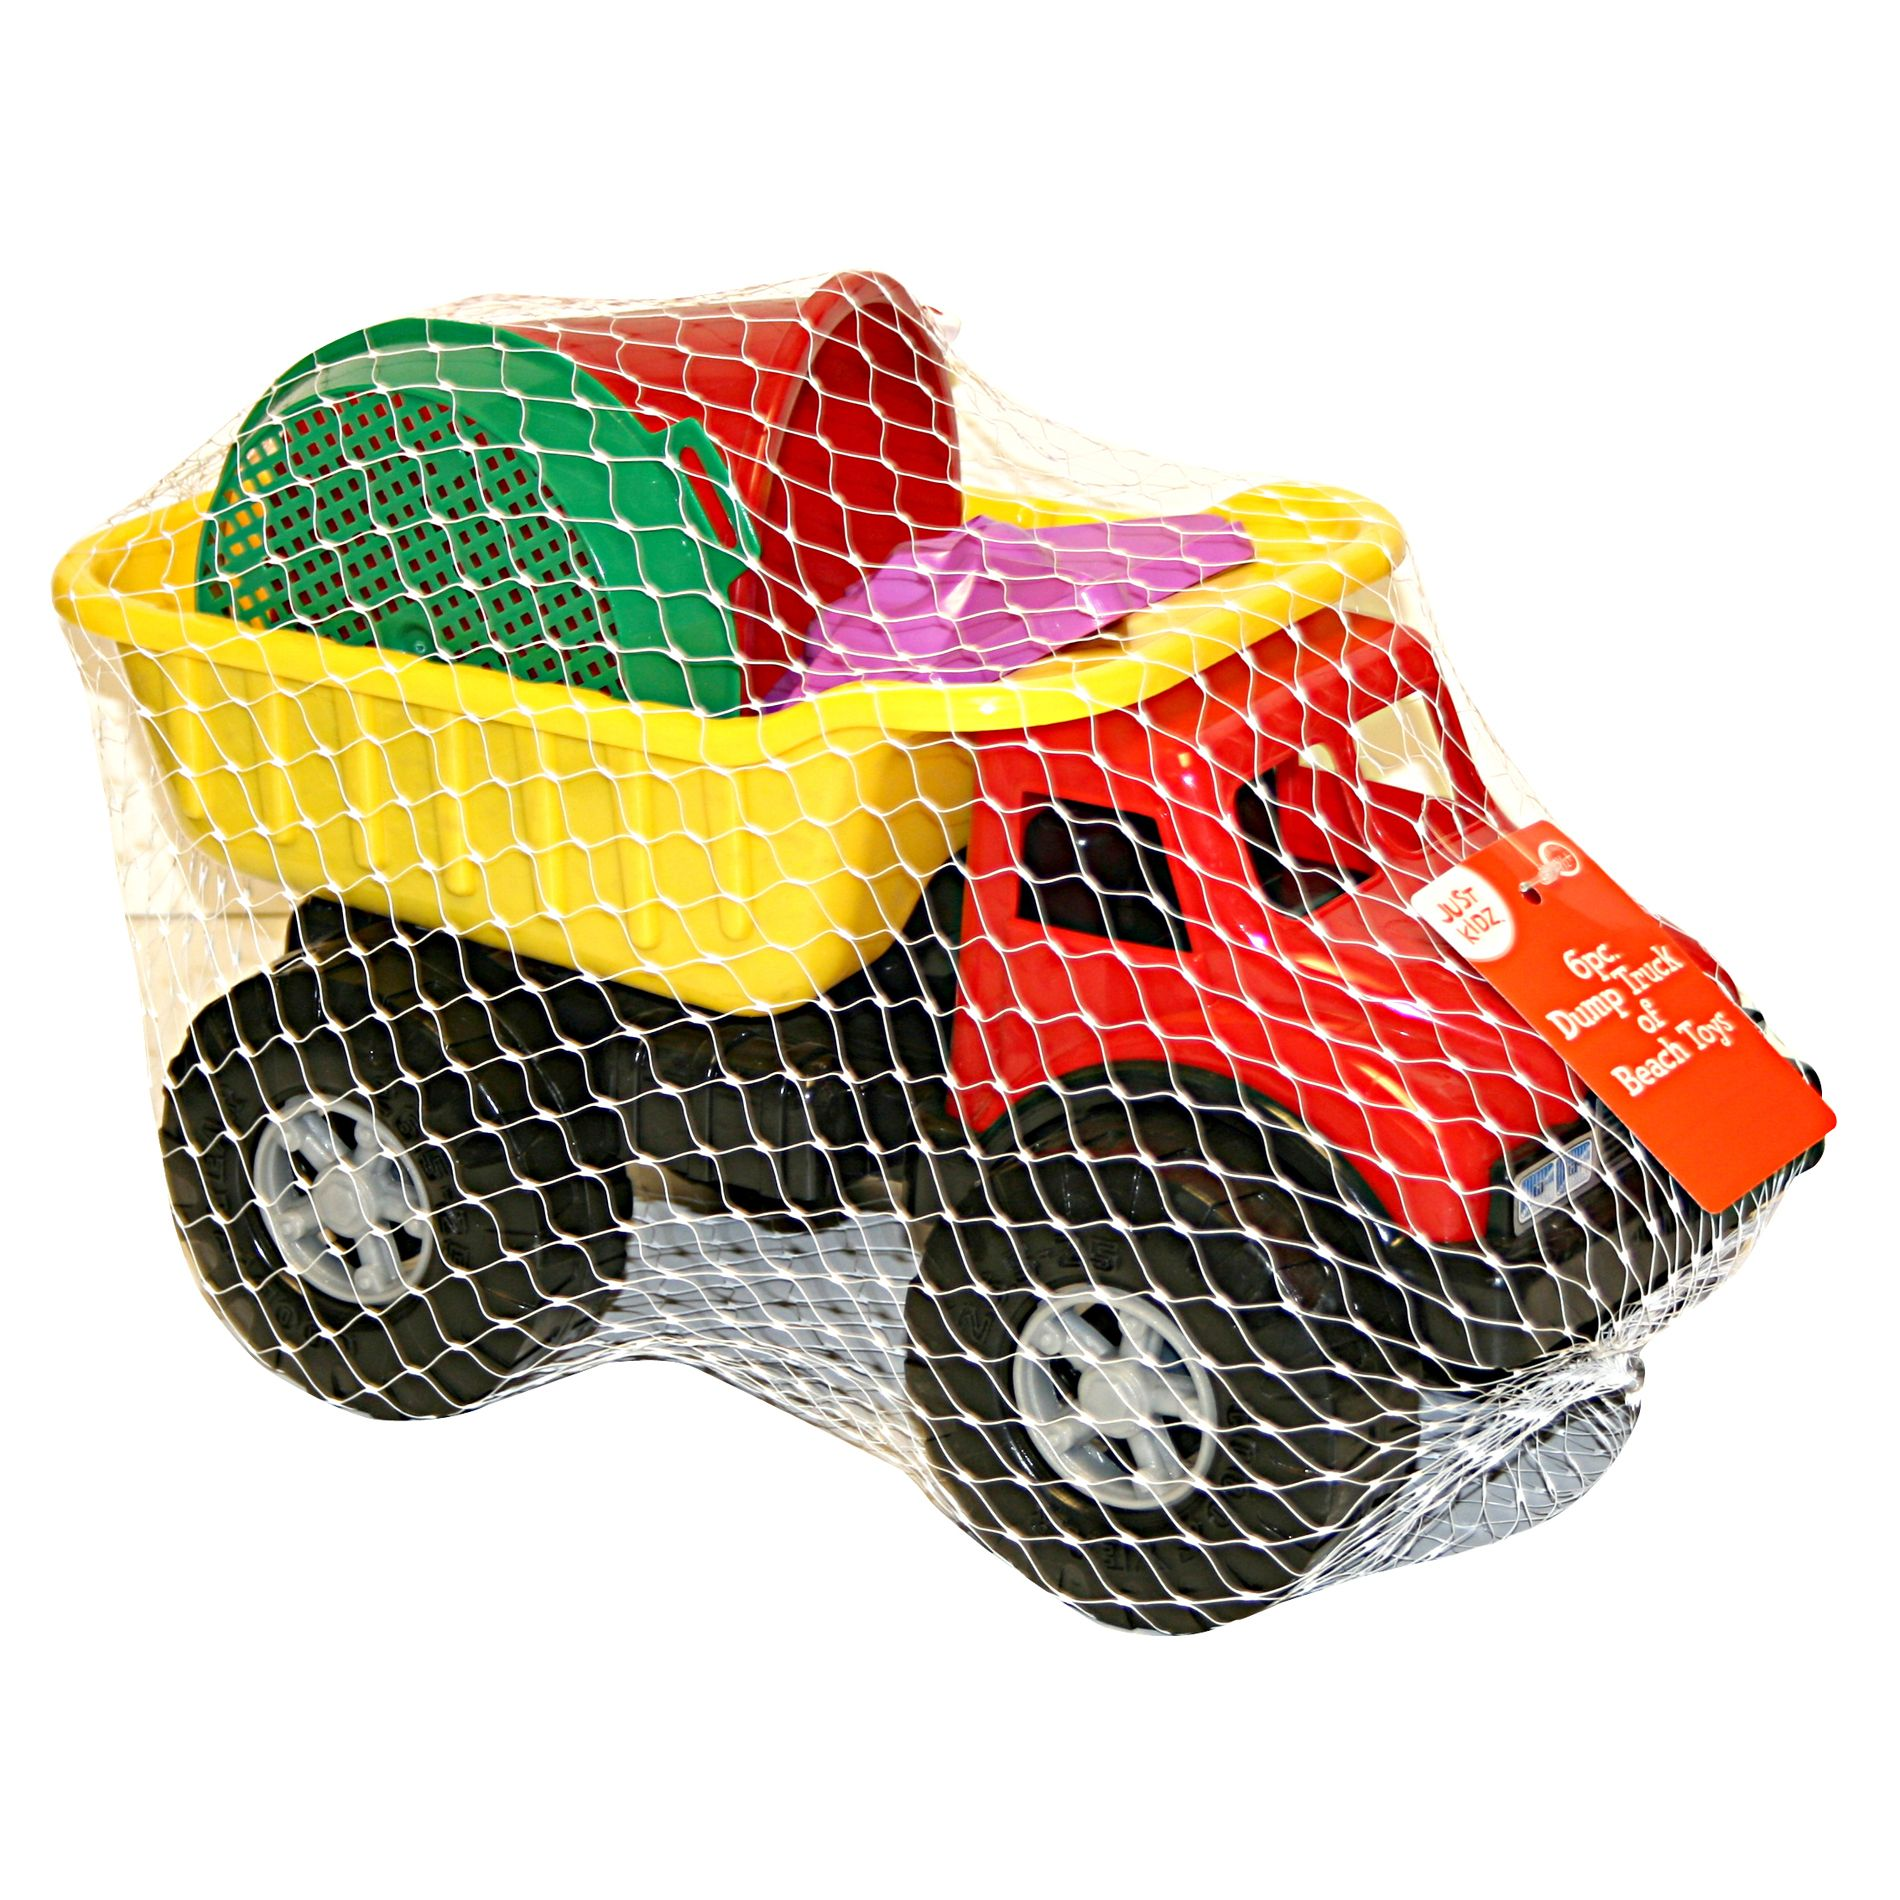 6 Pc. Dump Truck of Beach Toys                                                                                                   at mygofer.com